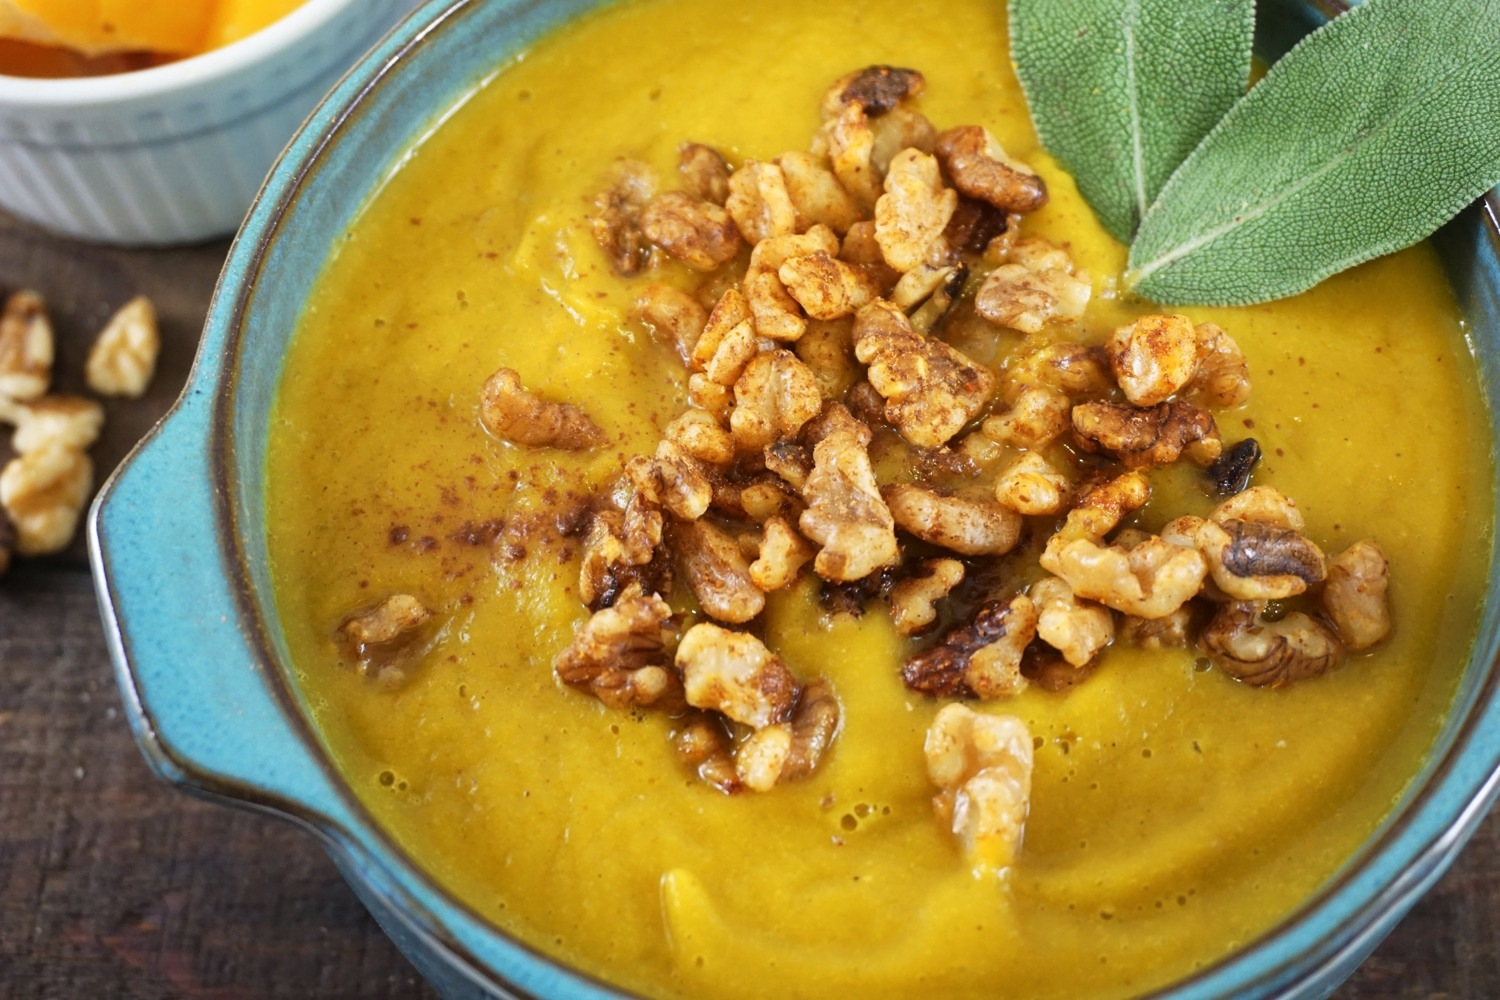 Butternut squash sage soup with cinnamon spiced walnuts | myupbeetlife